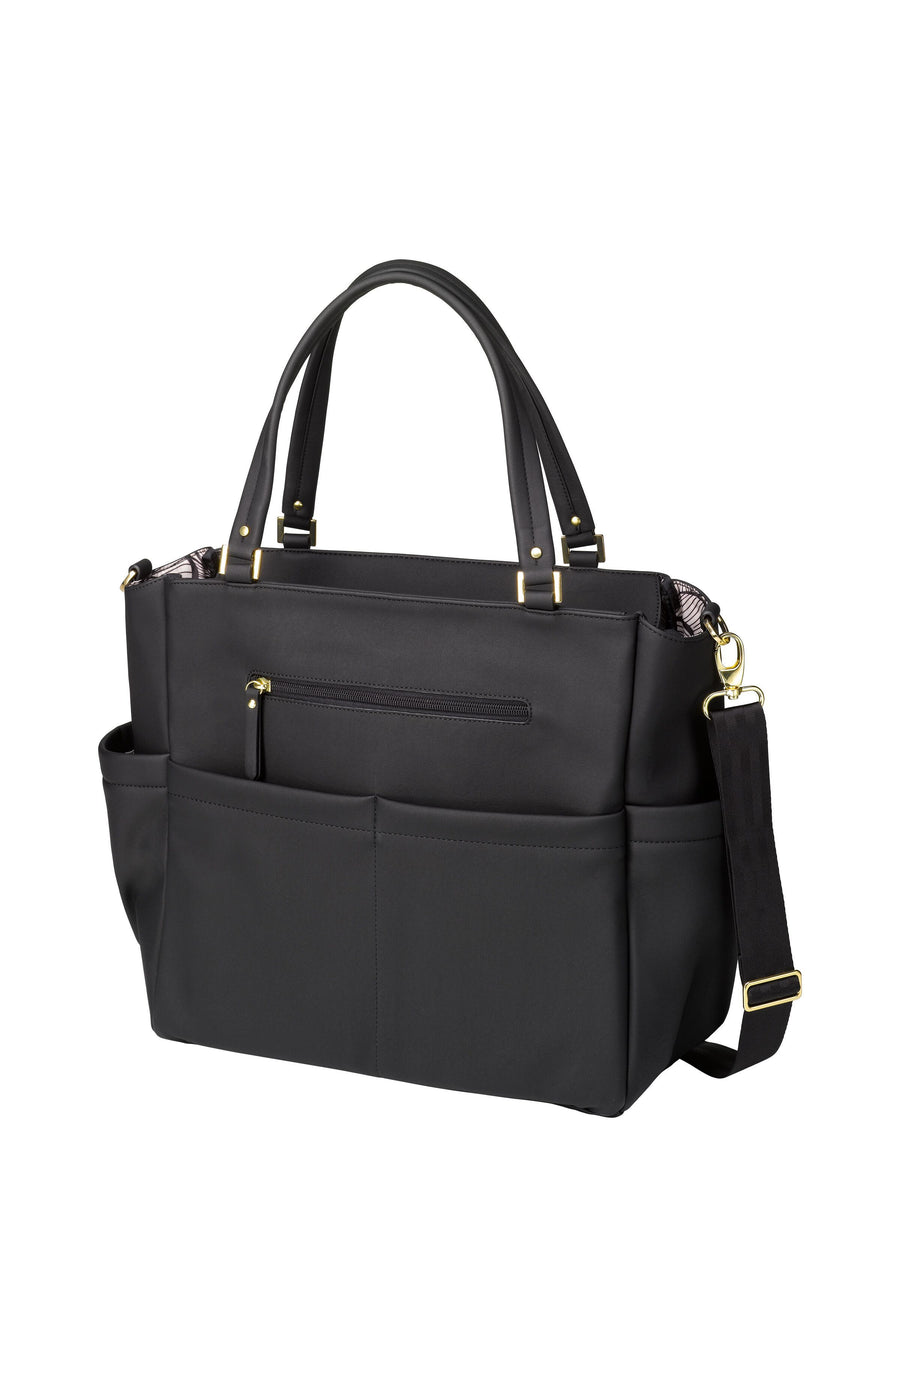 CITY CARRYALL IN BLACK MATTE LEATHERETTE  | Petunia Pickle Bottom